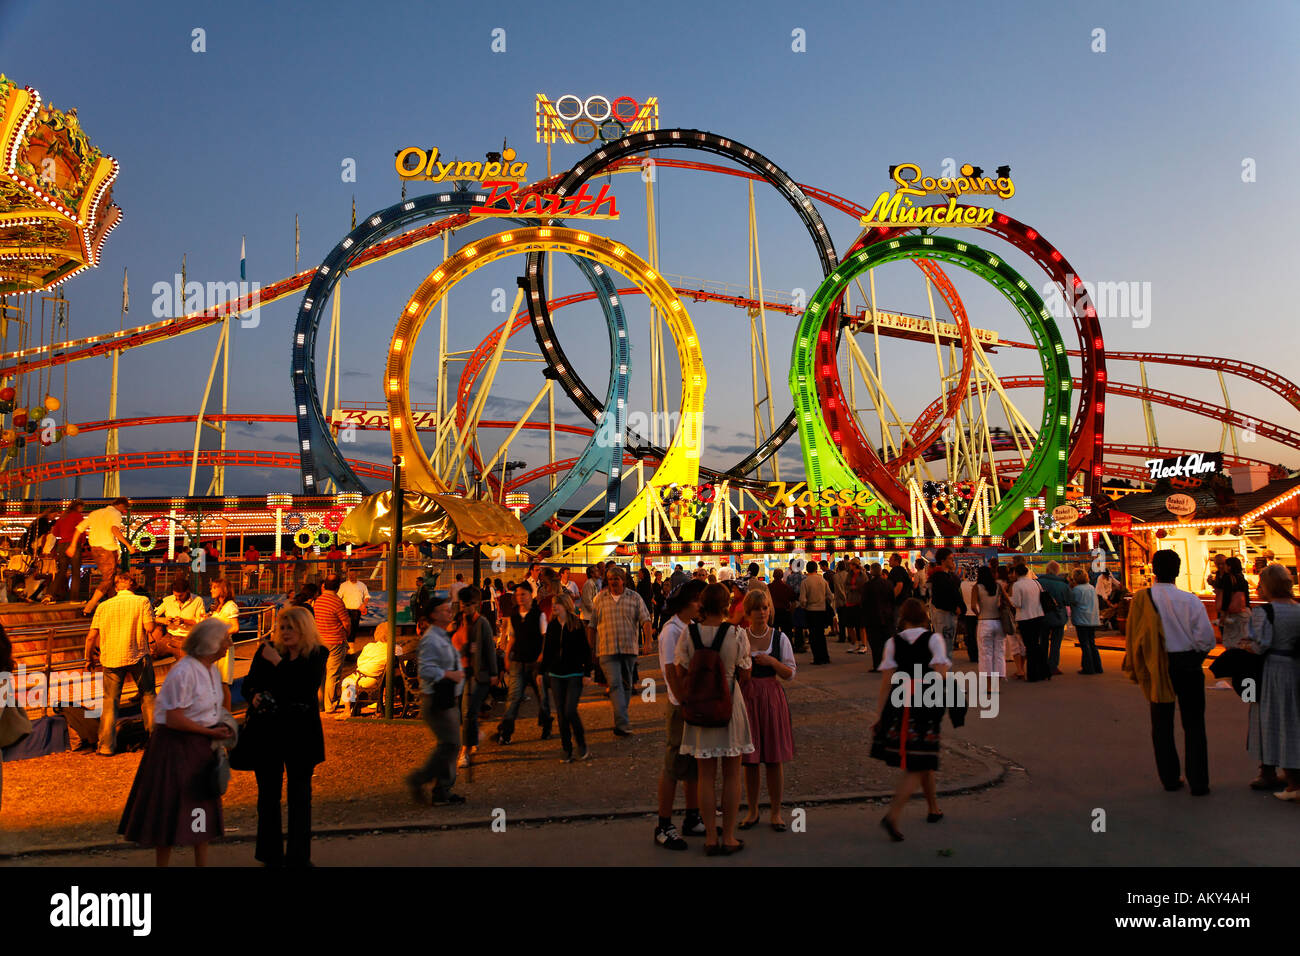 roller coaster olympia looping oktoberfest munich beer festival stock photo royalty free. Black Bedroom Furniture Sets. Home Design Ideas